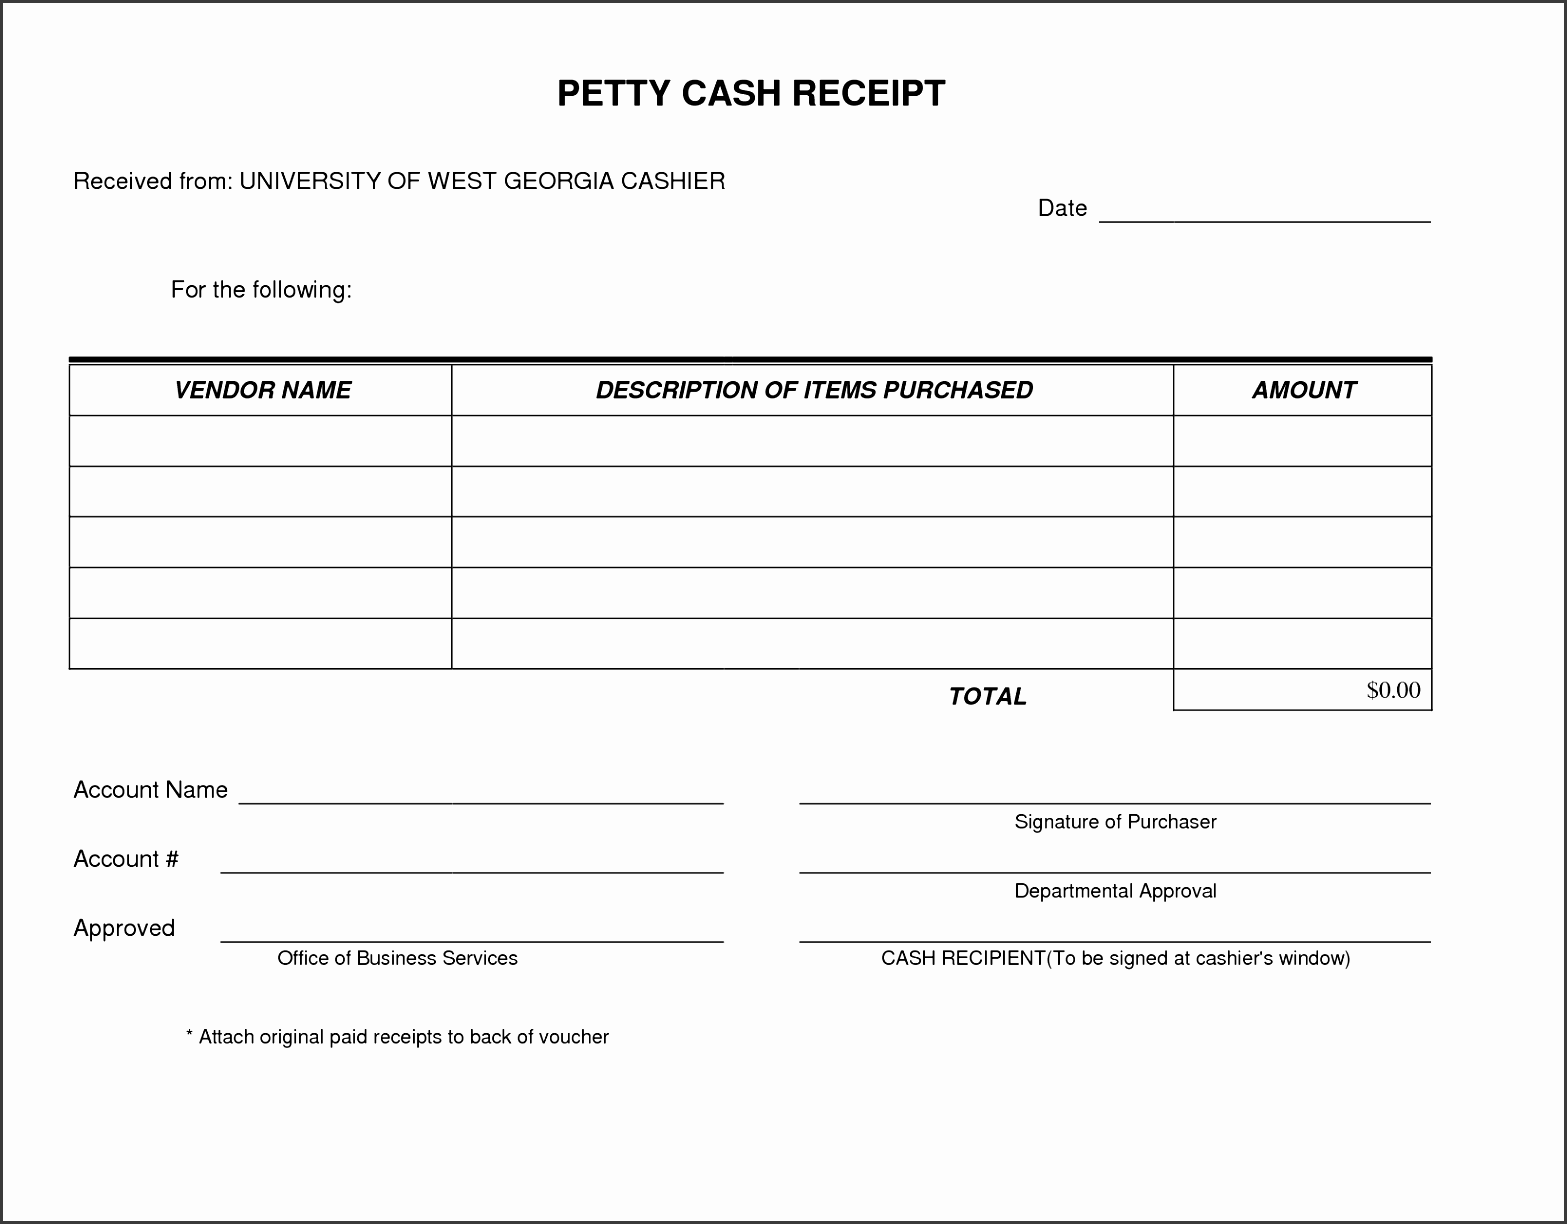 petty cash receipt form template very simple and easy to print i use this form